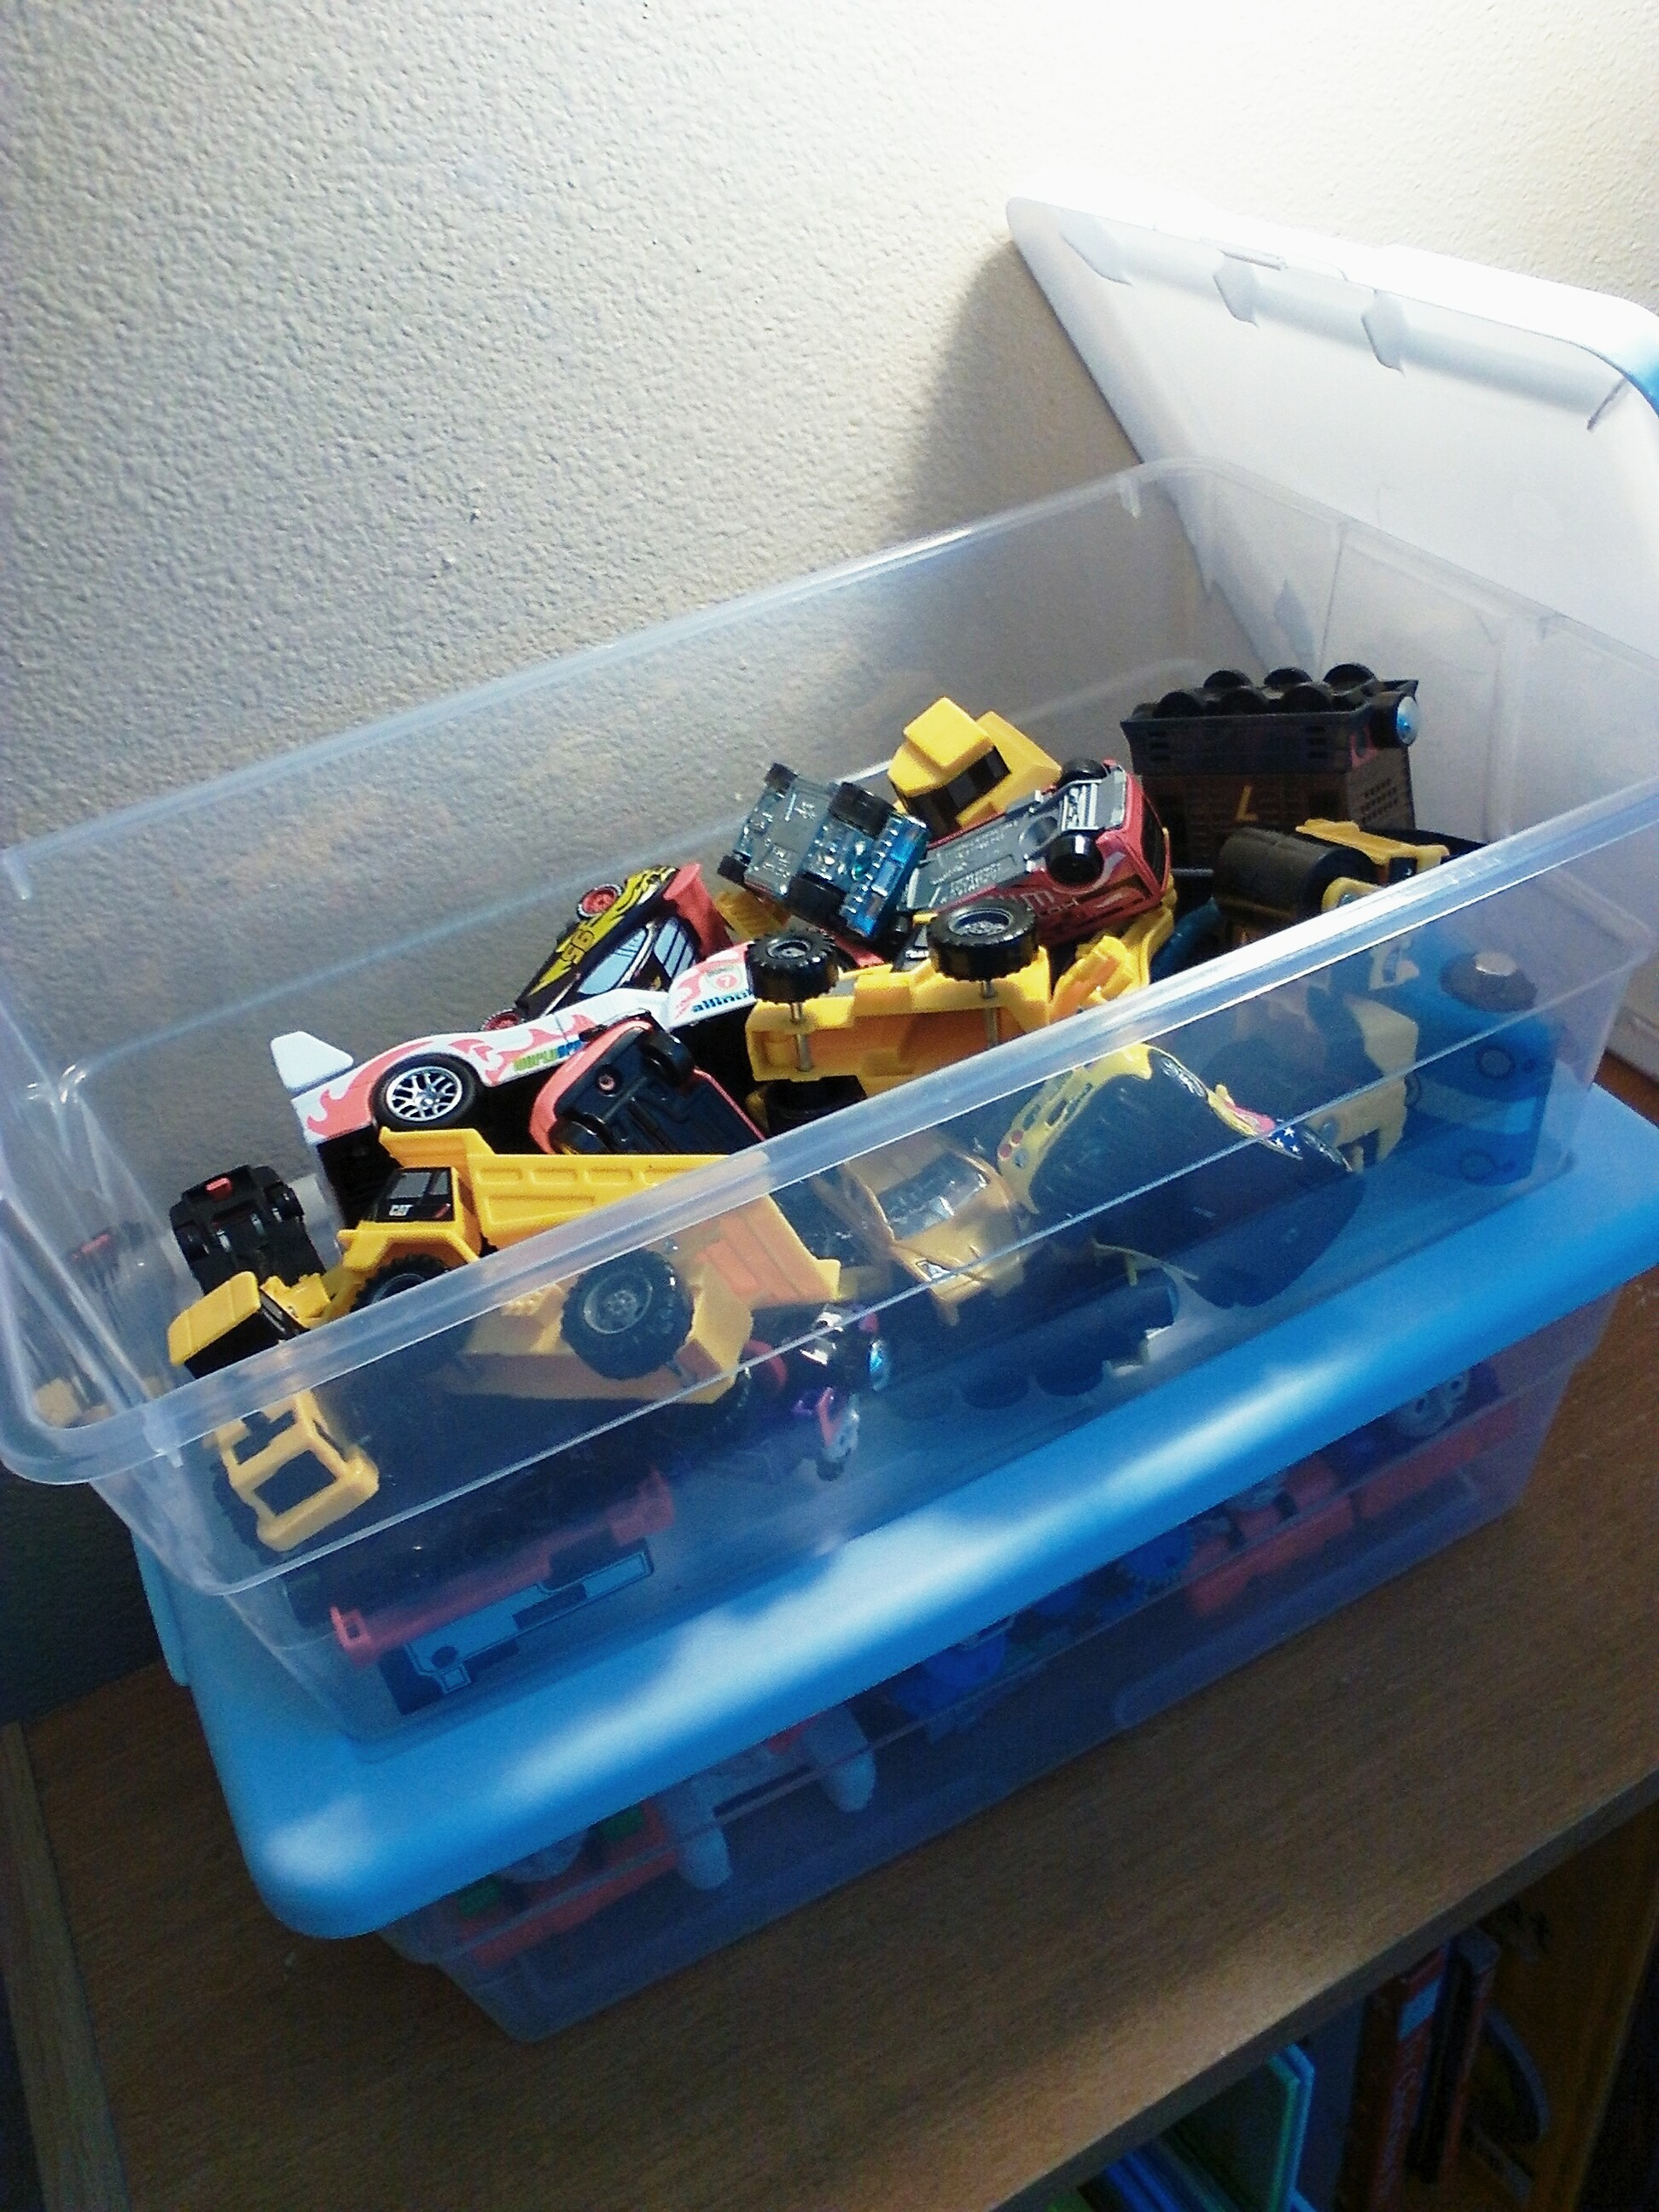 Cheap Way to Organize Your Home & Kid's Toys